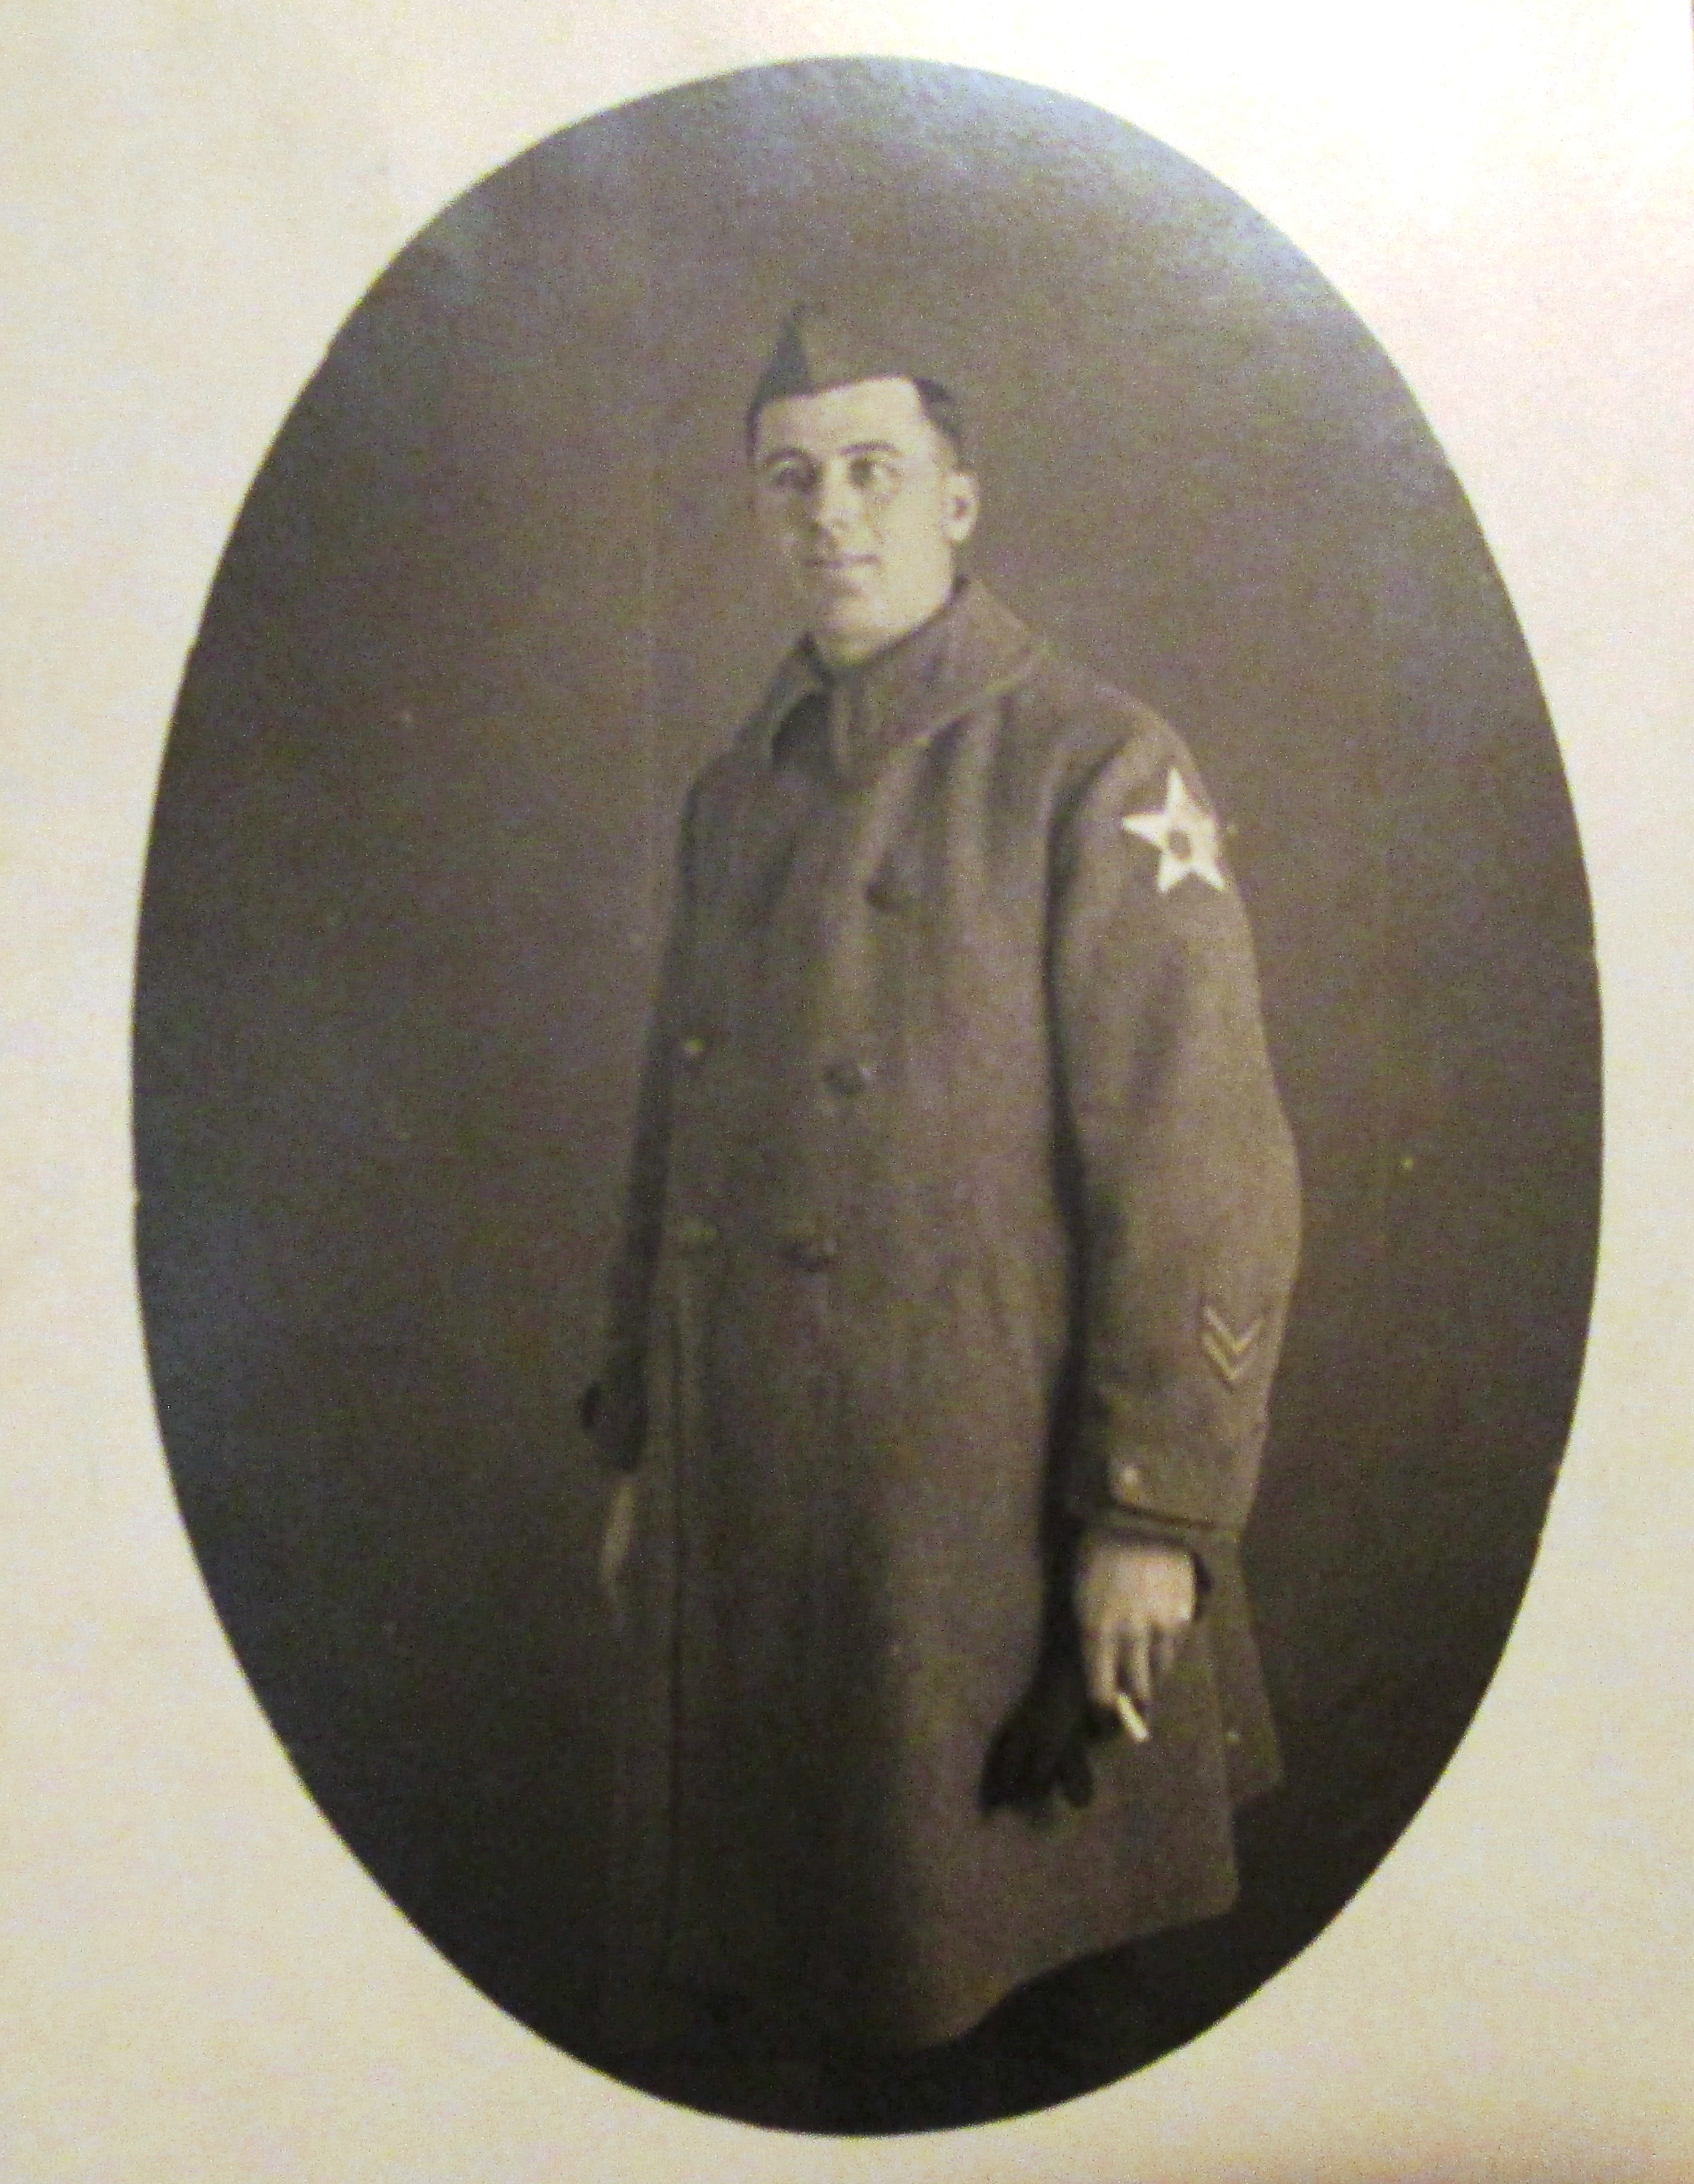 Edward Griffiths, rank unknown, 2d Infantry Division, AEF